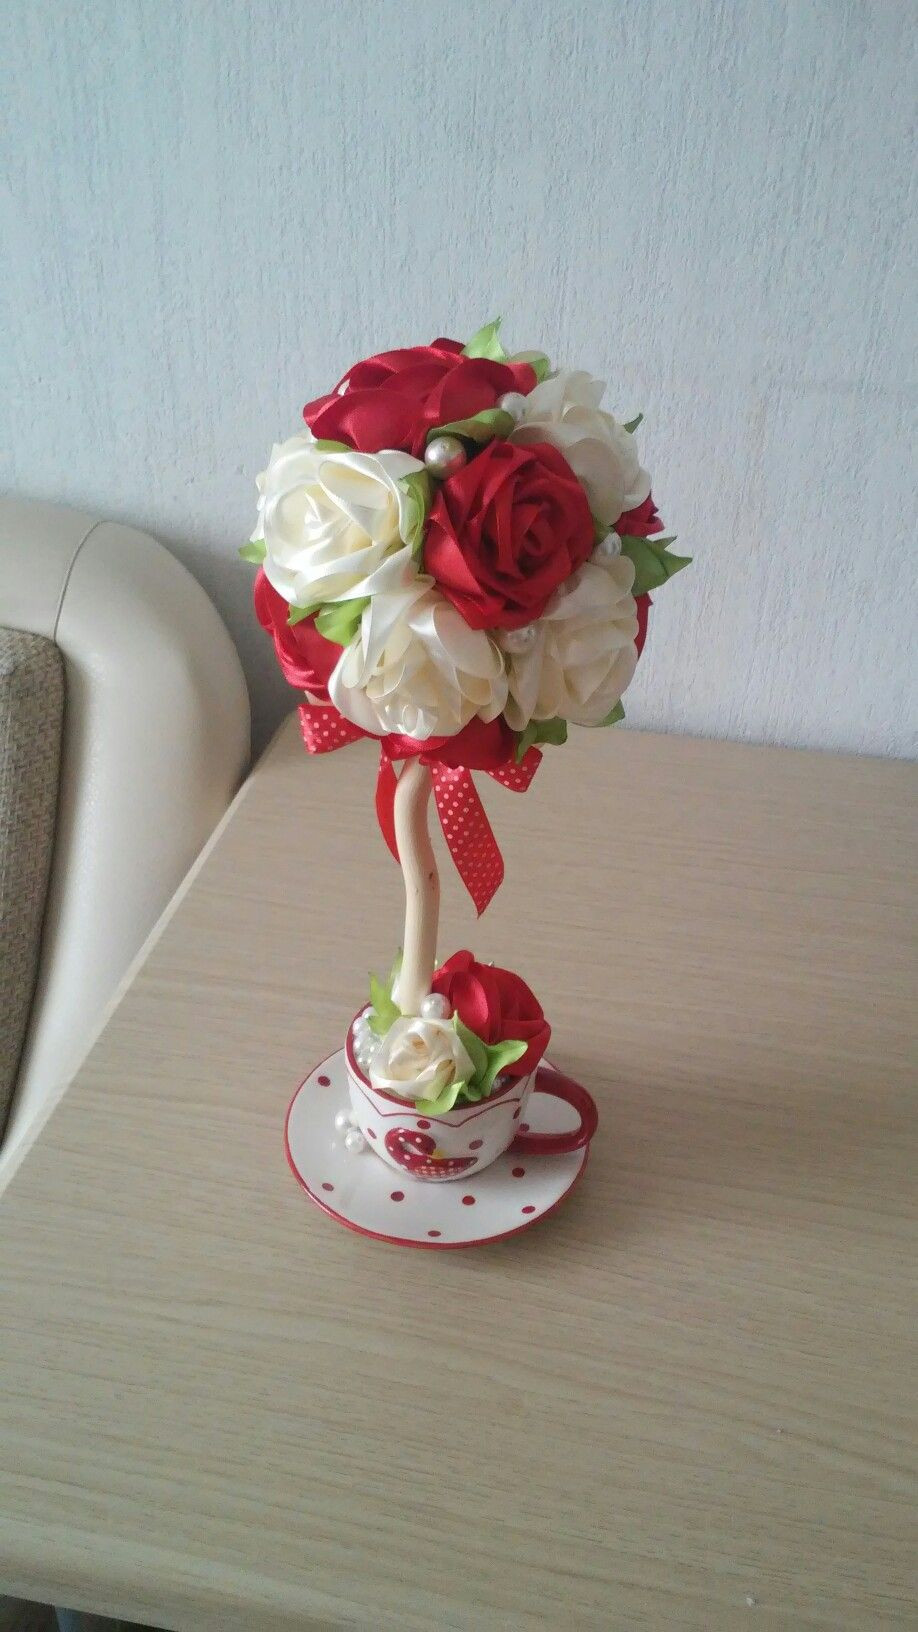 """vase of roses swarovski of pin by dddµd½d d""""n€nƒd·d¸do on d¢d¾dd¸dn€d¸d¹ pinterest with red wedding bouquetsred wedding flowerswhite roses weddingbridesmaid flowerswhite bouquetsred and white rosesfloral bouquetsred rosesred and white weddings"""